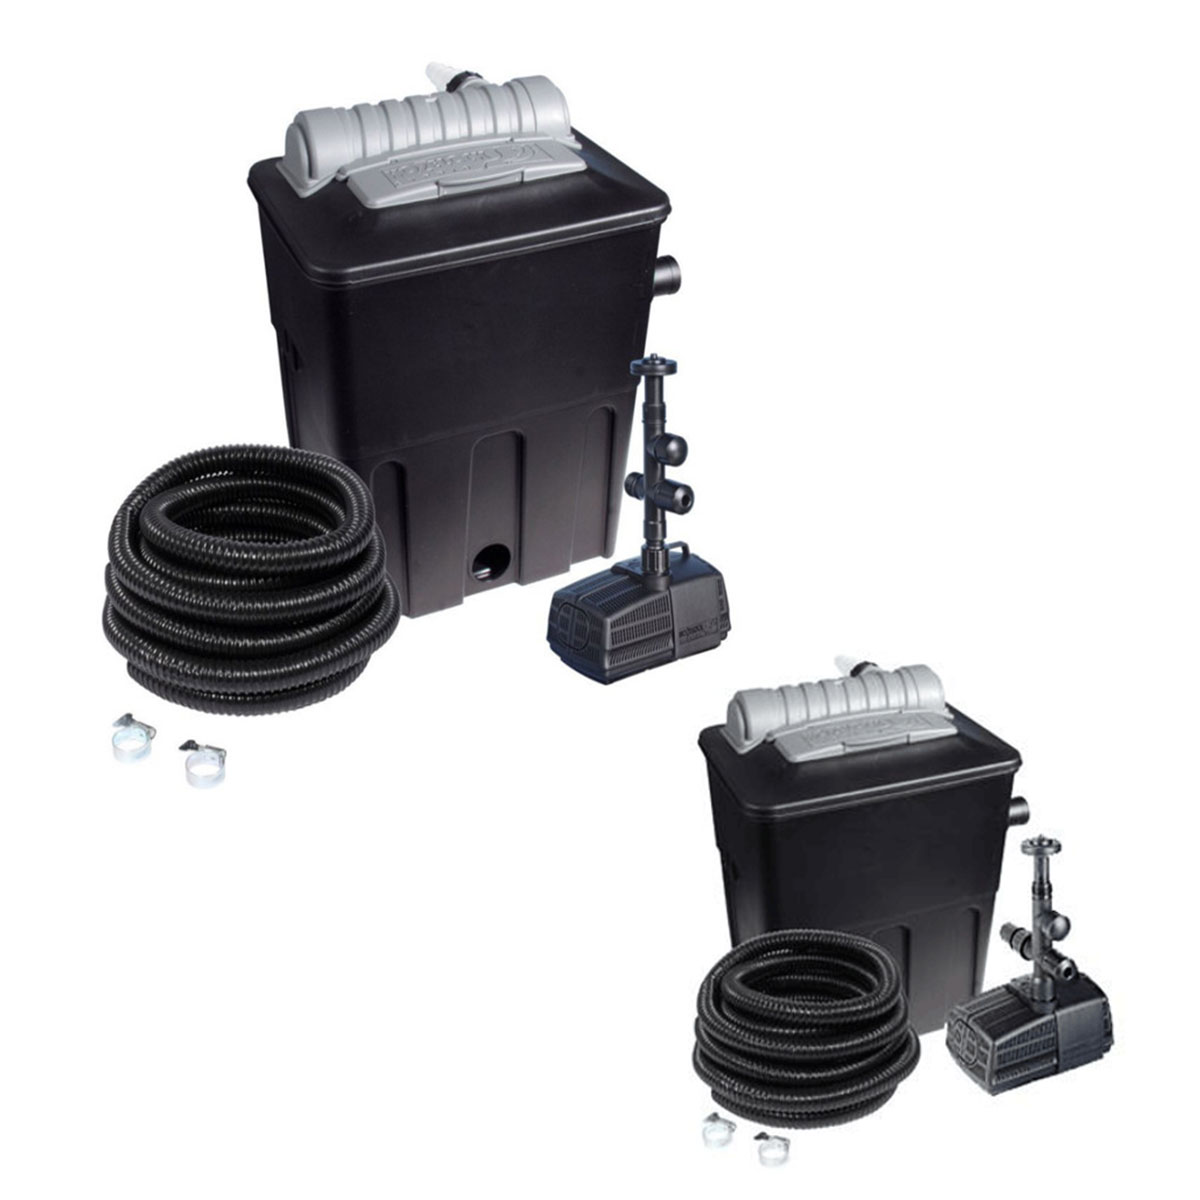 Hozelock combi kit with uvc ecopower plus pond filter for Pond filter kit